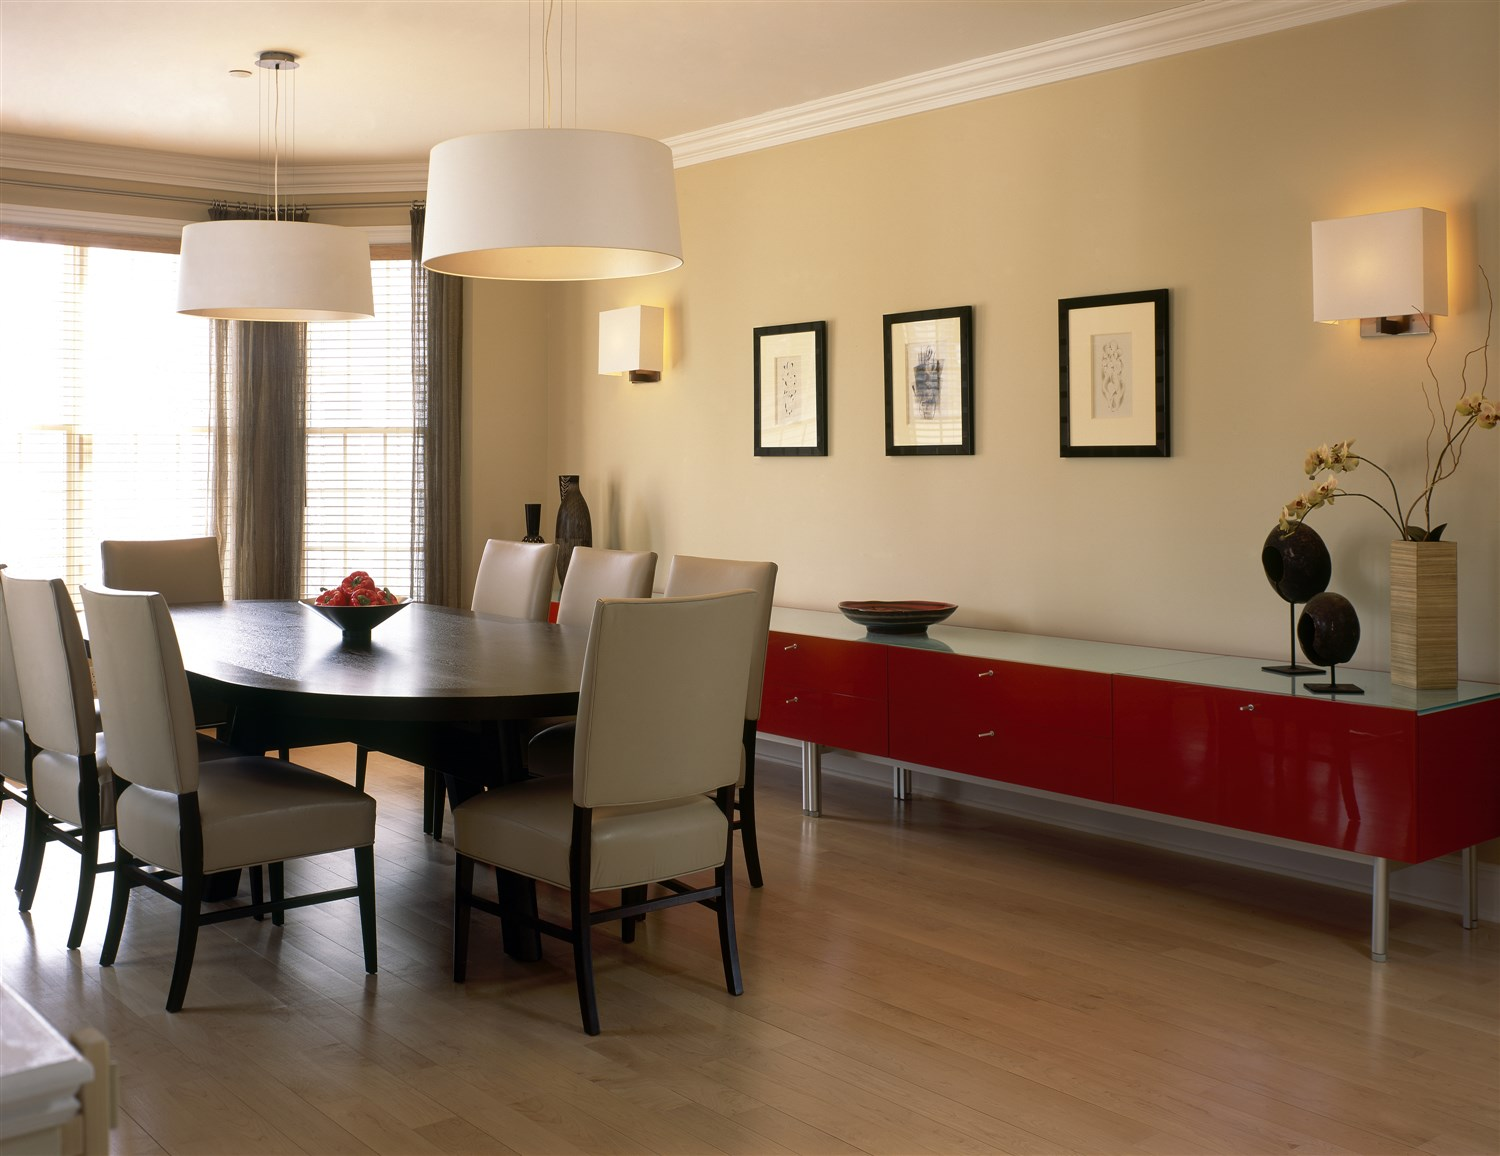 Spacious Modern dining area with rectangular table for eight